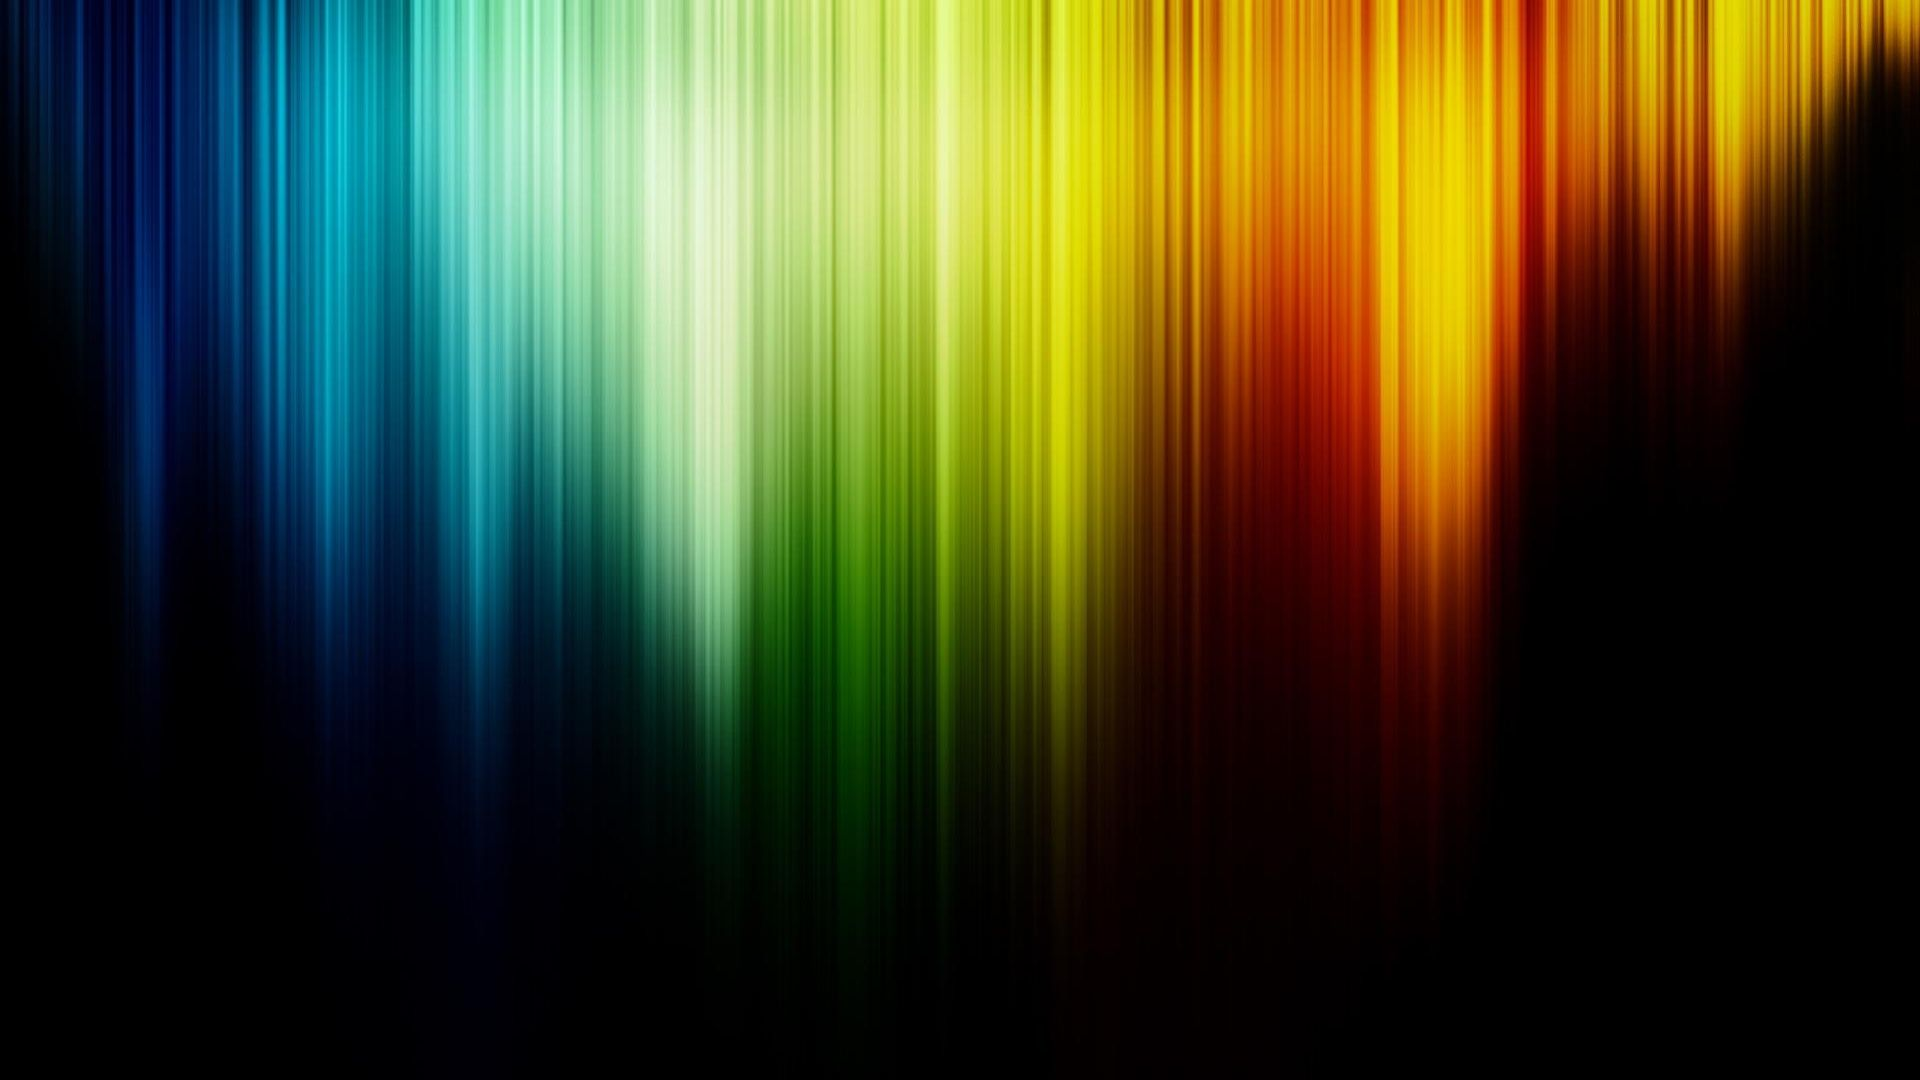 Bright color background wallpaper ImageBankbiz 1920x1080